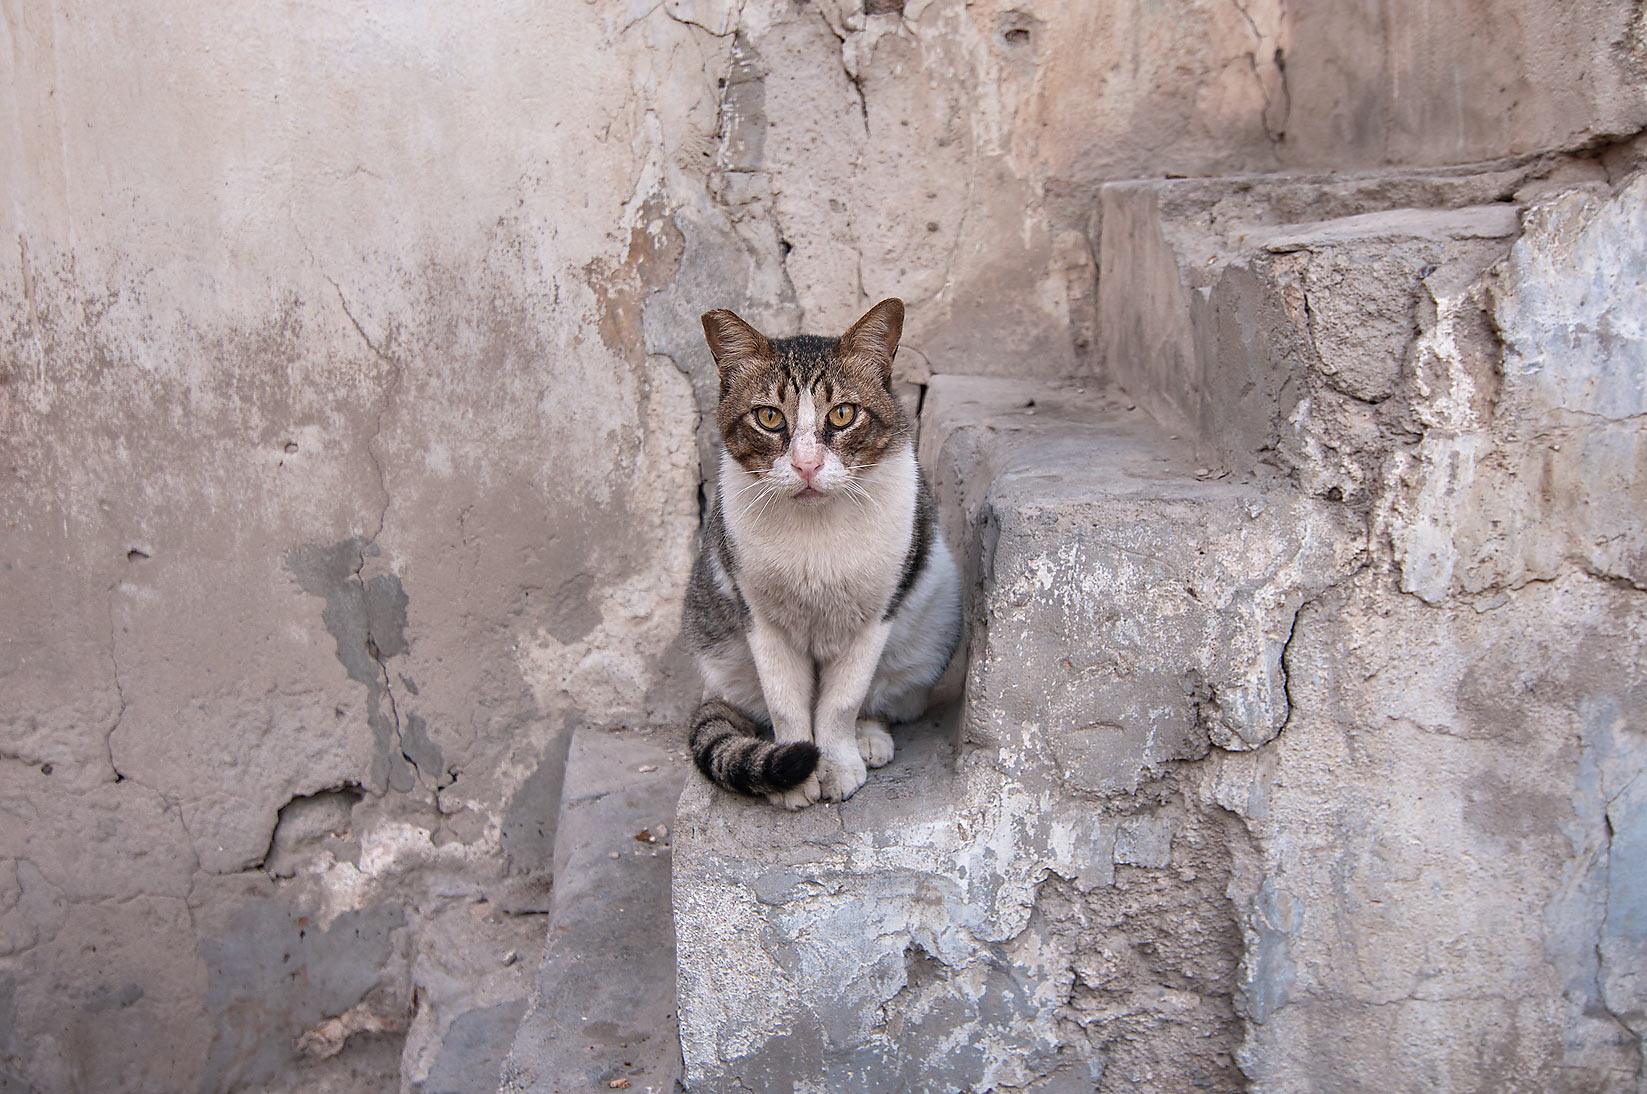 Cat sitting on stone steps at Umm Wishah St., Musheirib area. Doha, Qatar